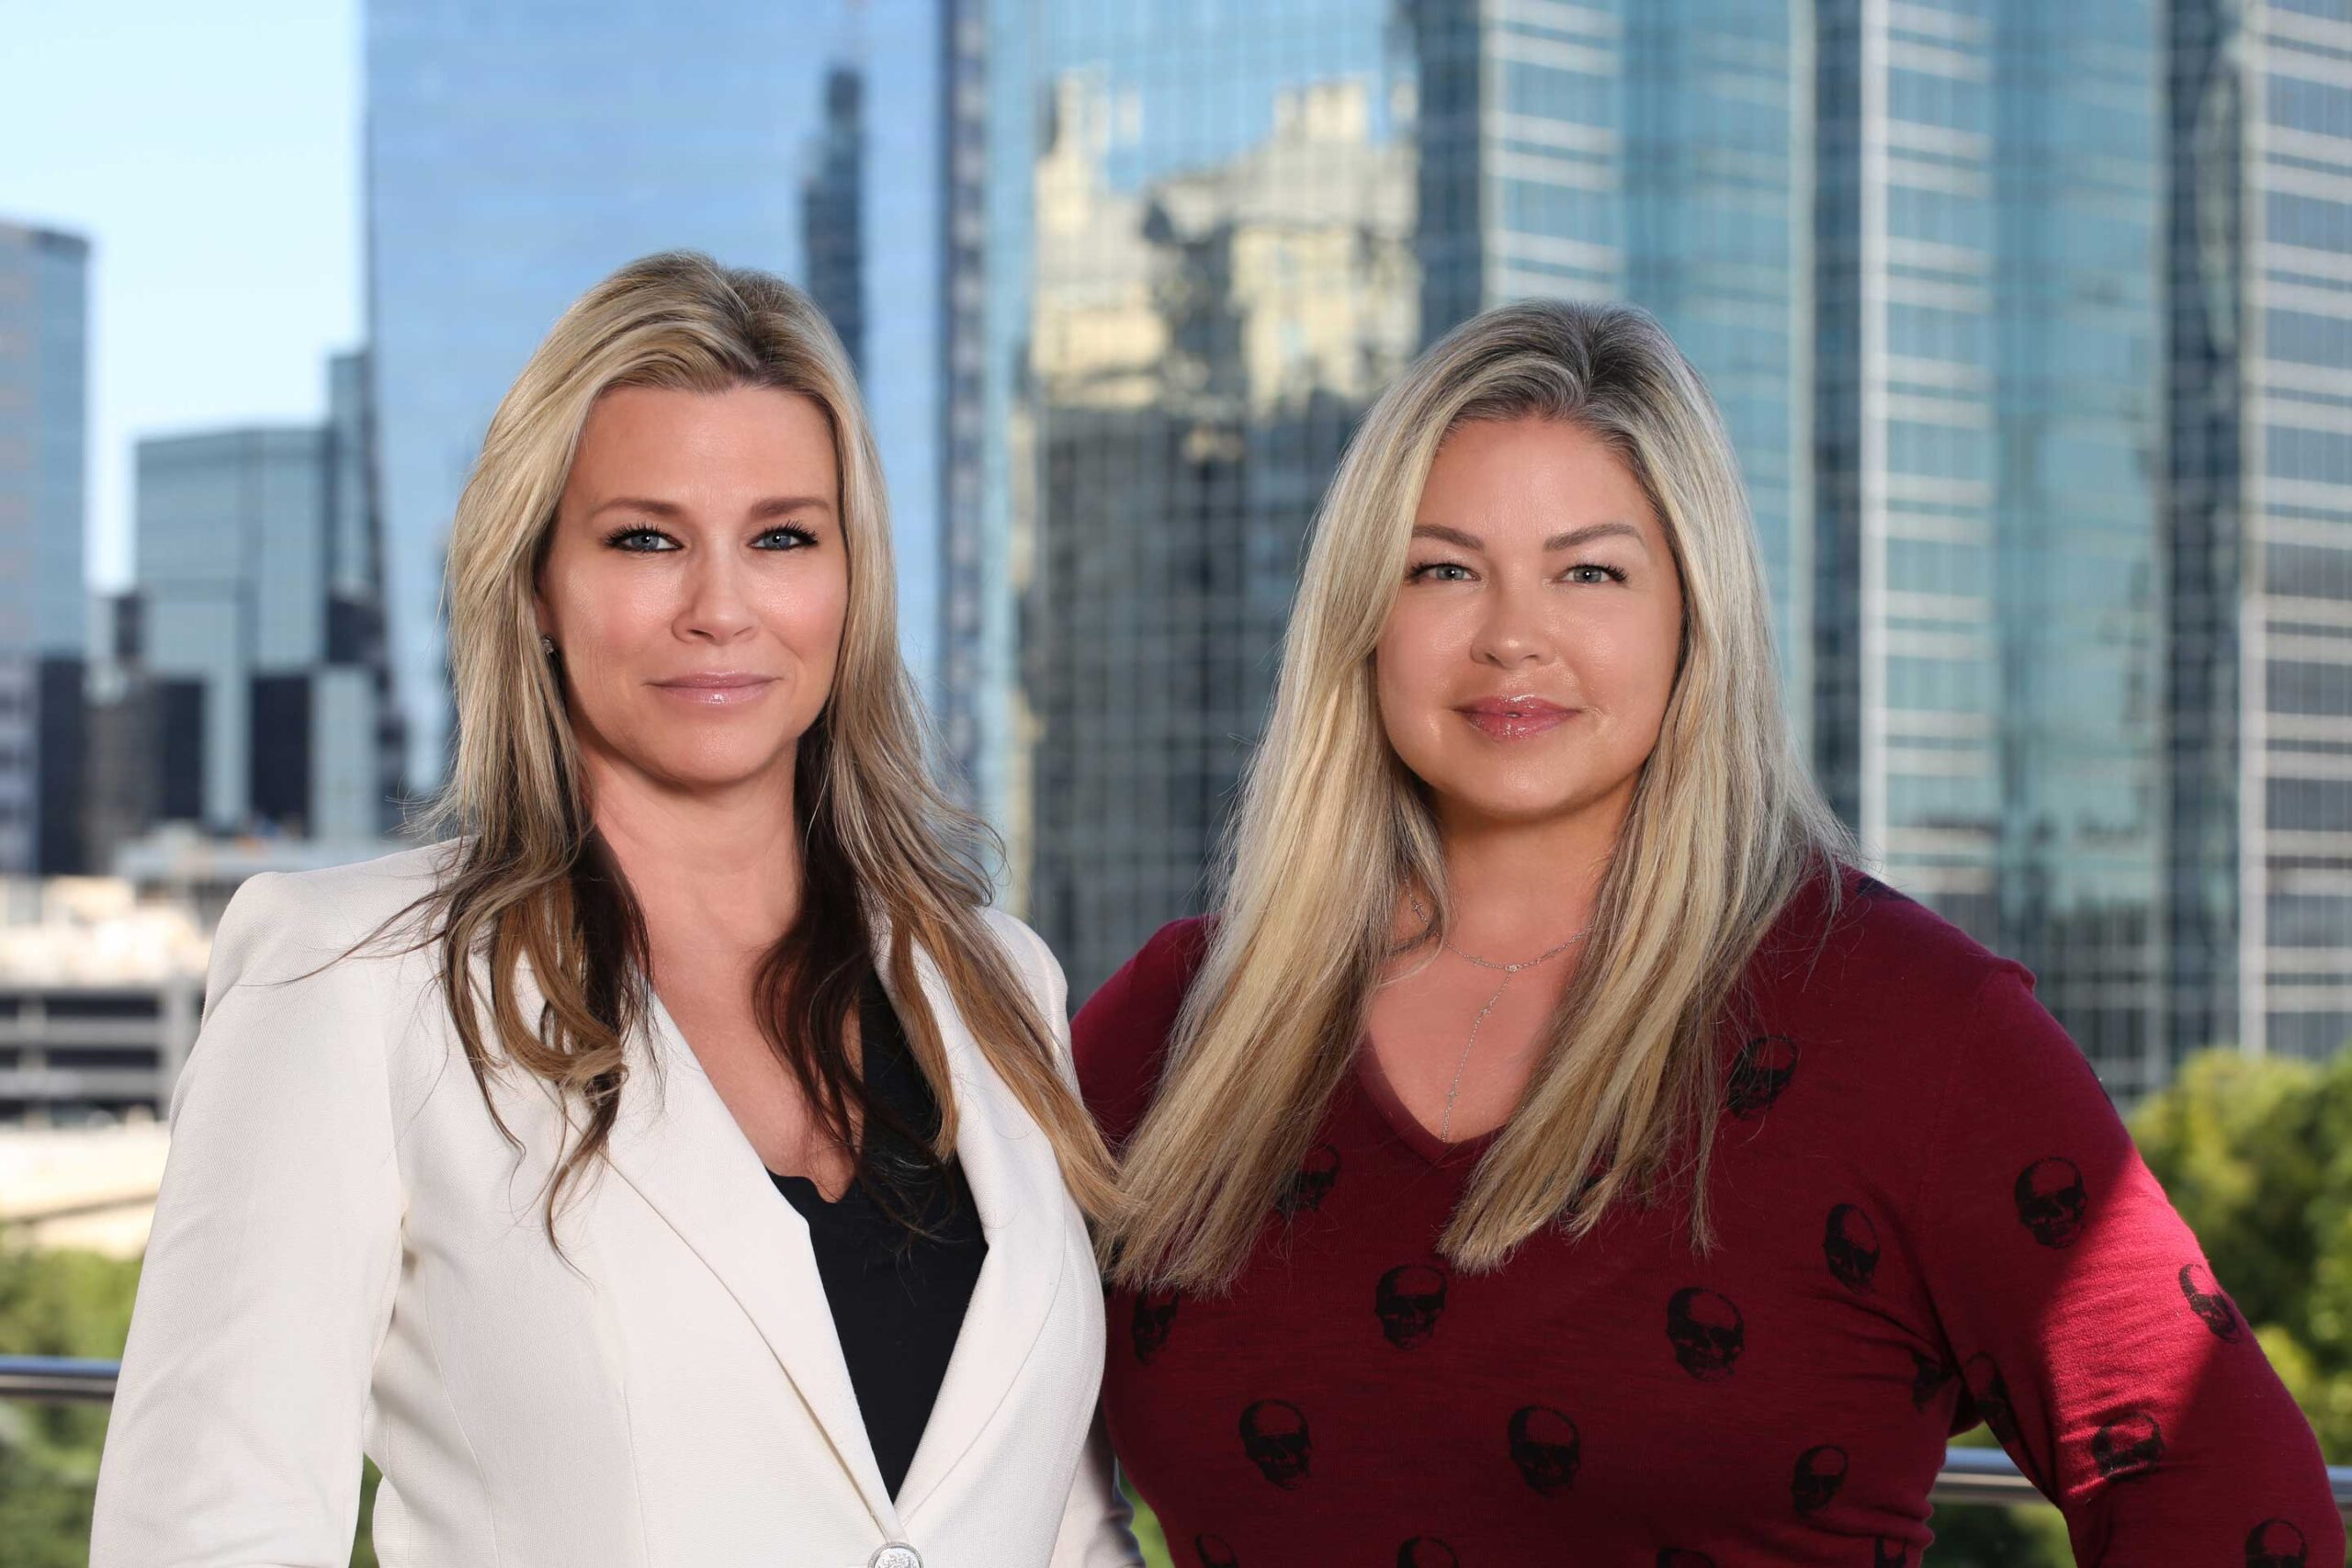 Vital4 Founders Kristin Stafford & Amy Barbieri Interview With TruNarrative CEO John Lord